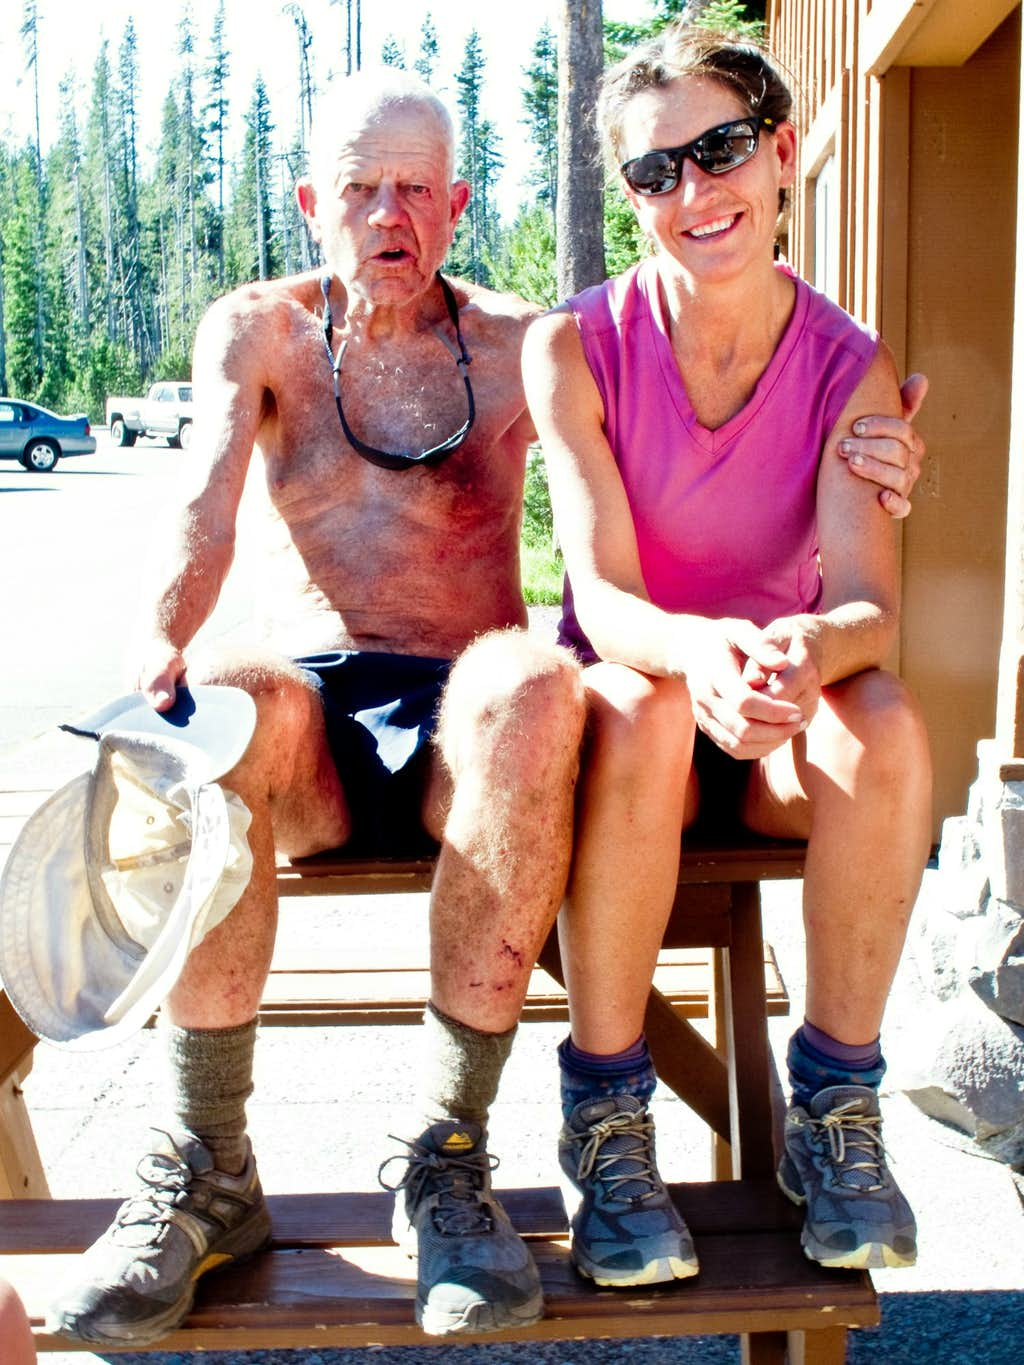 Post Hike Rest at the Mazama Store